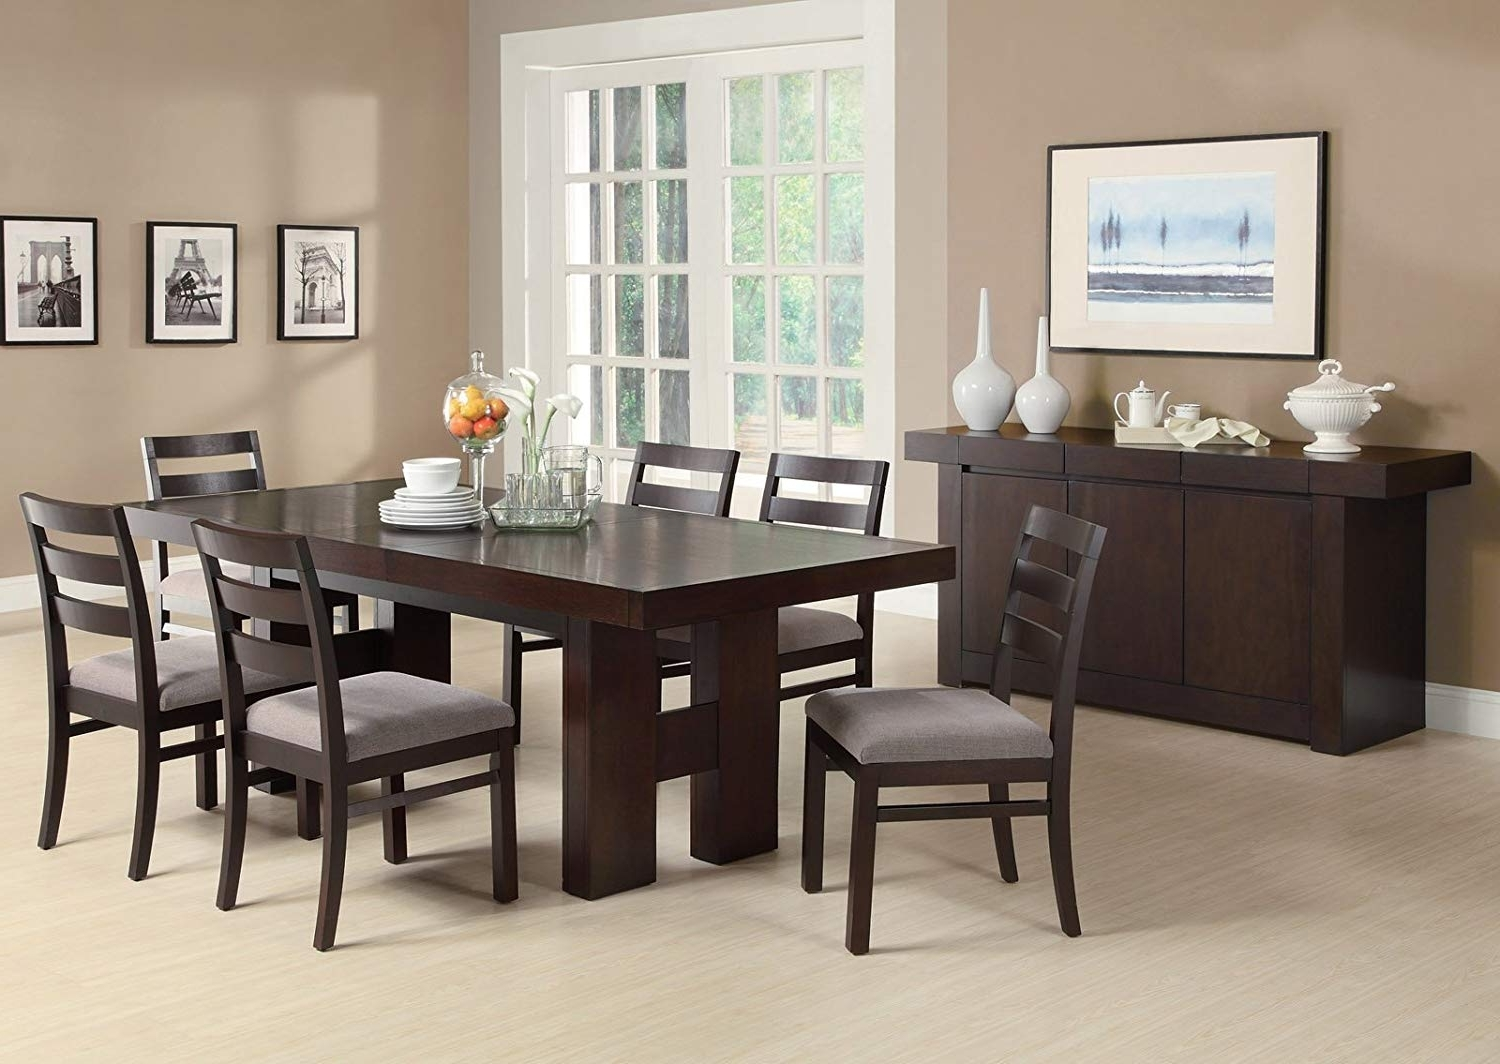 Craftsman 7 Piece Rectangle Extension Dining Sets With Side Chairs With Regard To Well Liked Amazon – Dabny 7 Pc Dining Table Setcoaster – Table & Chair Sets (View 4 of 25)